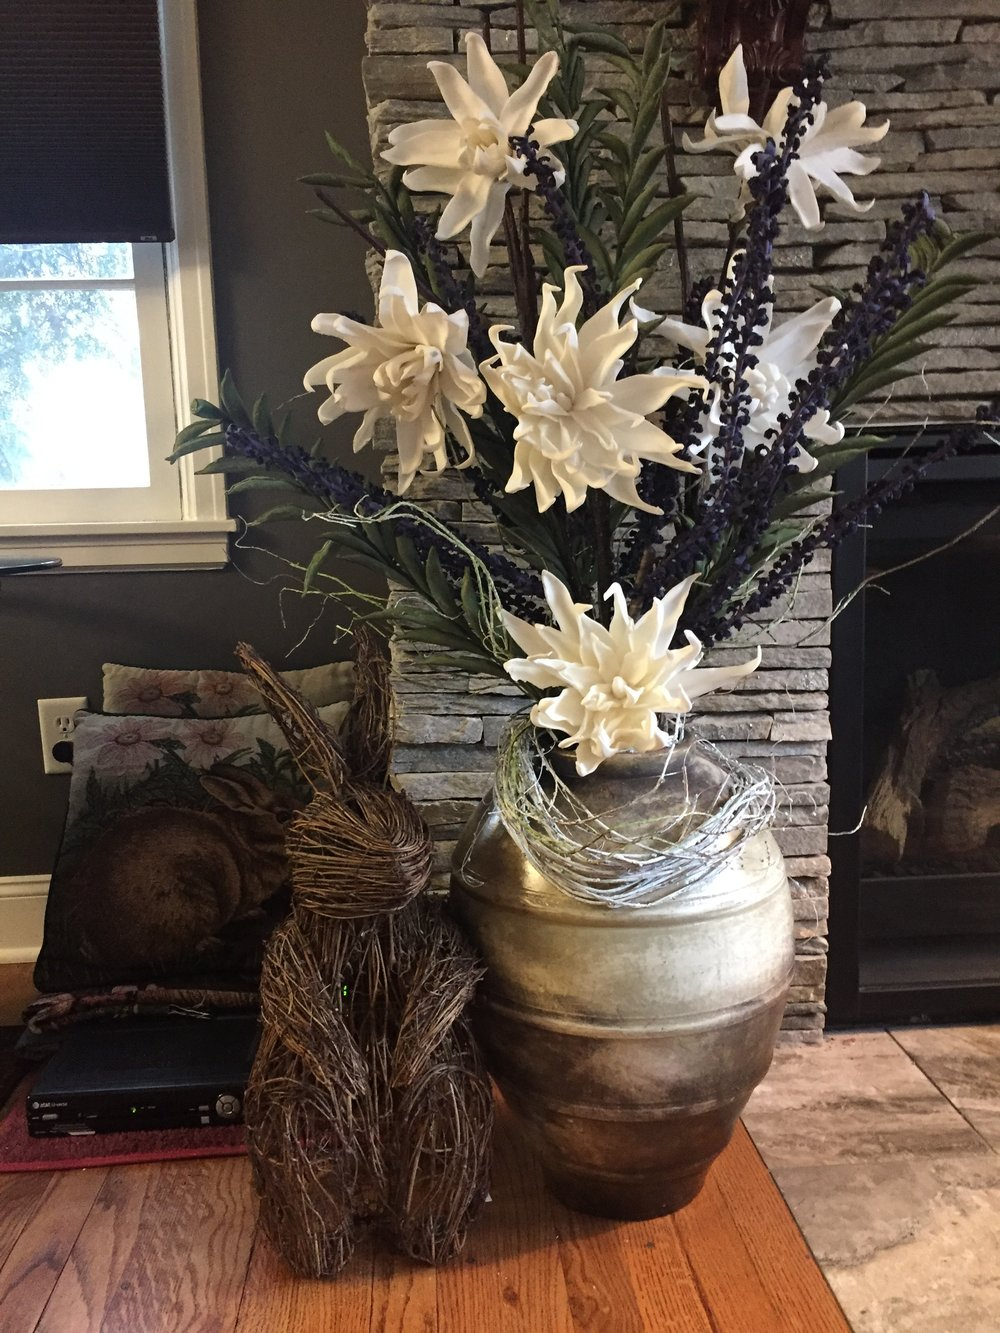 Vases & Arrangements - Vases, aside from be a holder for florals, greenery or botanicals, also make a design statement.  Vases are another readily available decor item, in many styles, shapes and sizes.  Arrangements can be high quality realistic permanent ones or fresh.